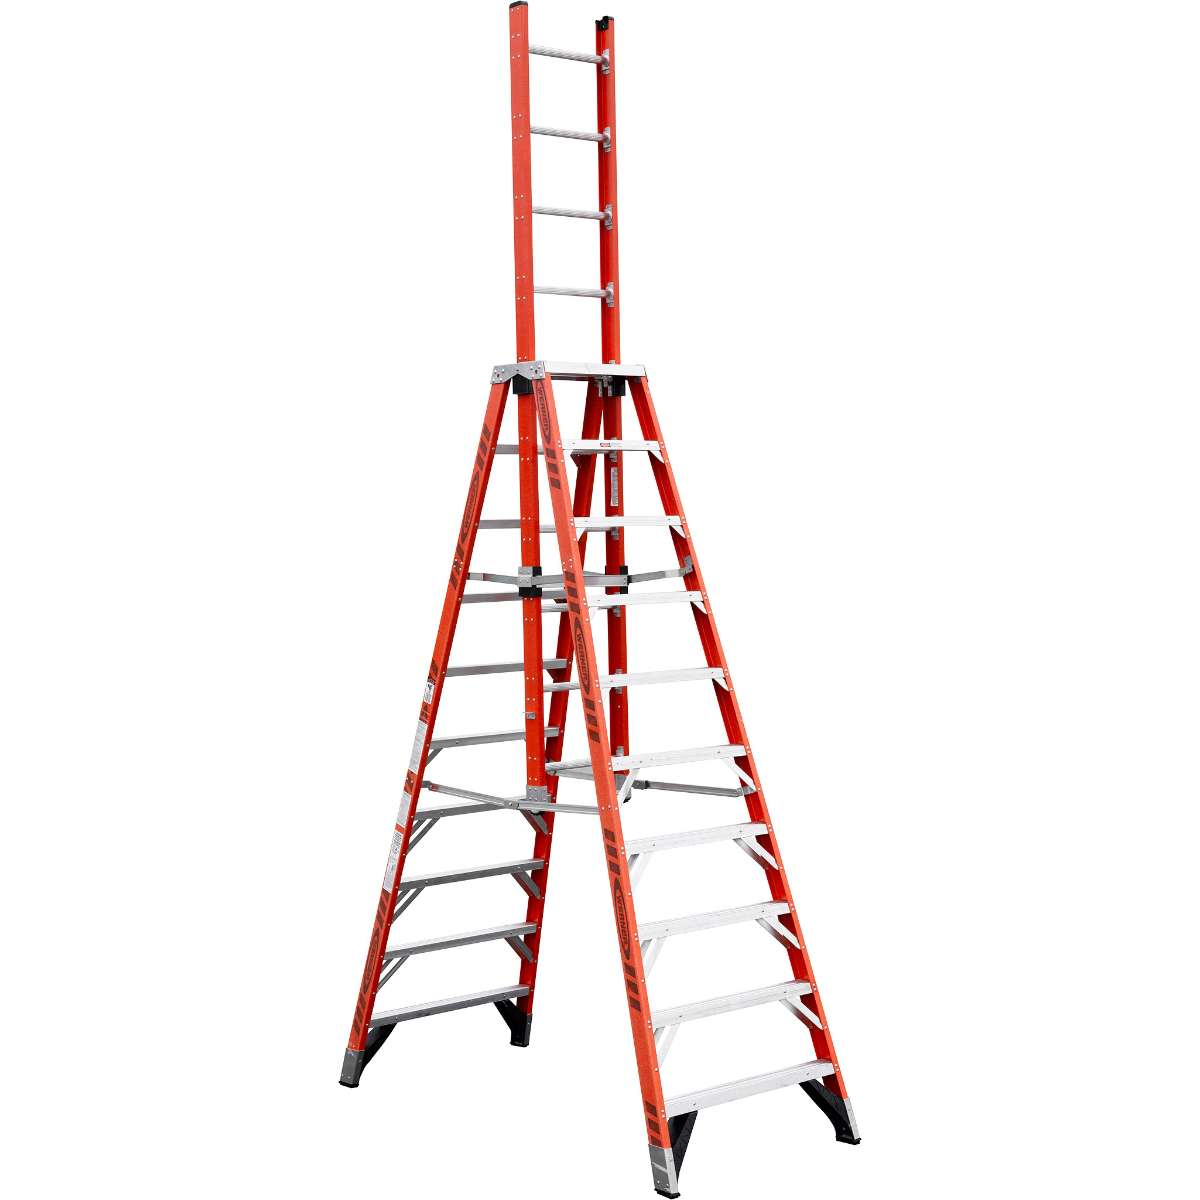 Fiberglass Ext. Trestle Ladder - 300 lb. Capacity (E7400 Series)